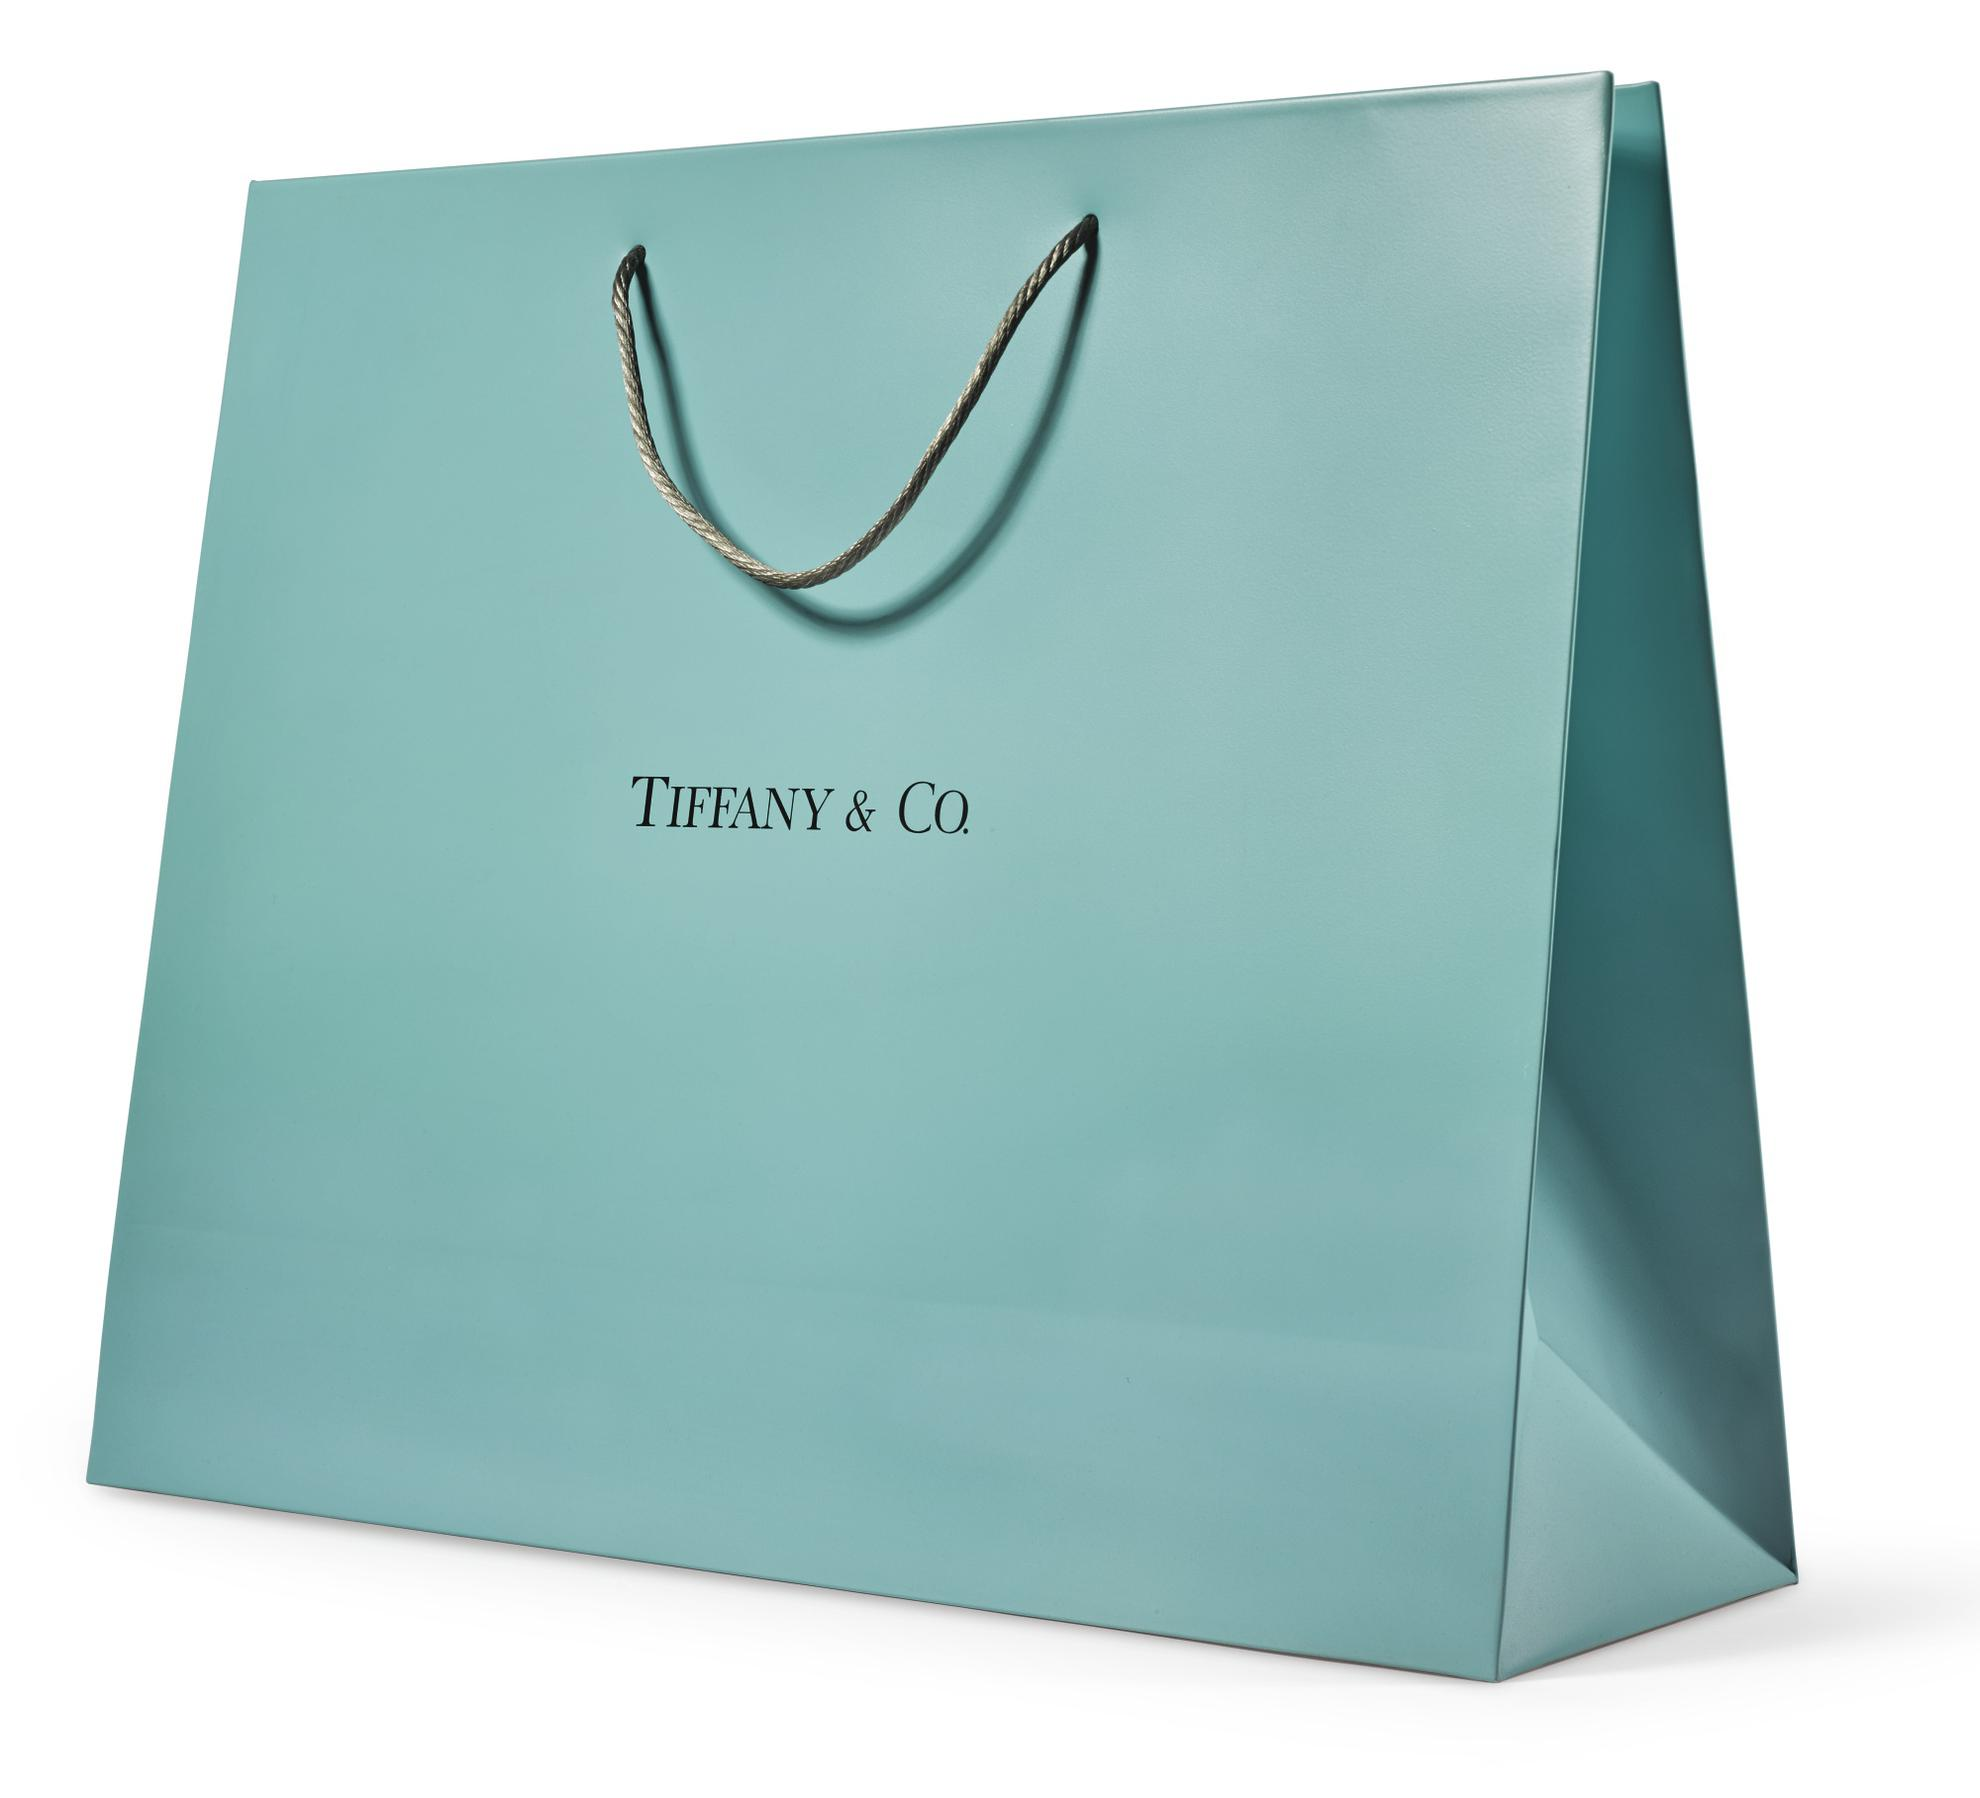 Jonathan Seliger-The Wedding Present (Tiffany & Co. Shopping Bag)-2005